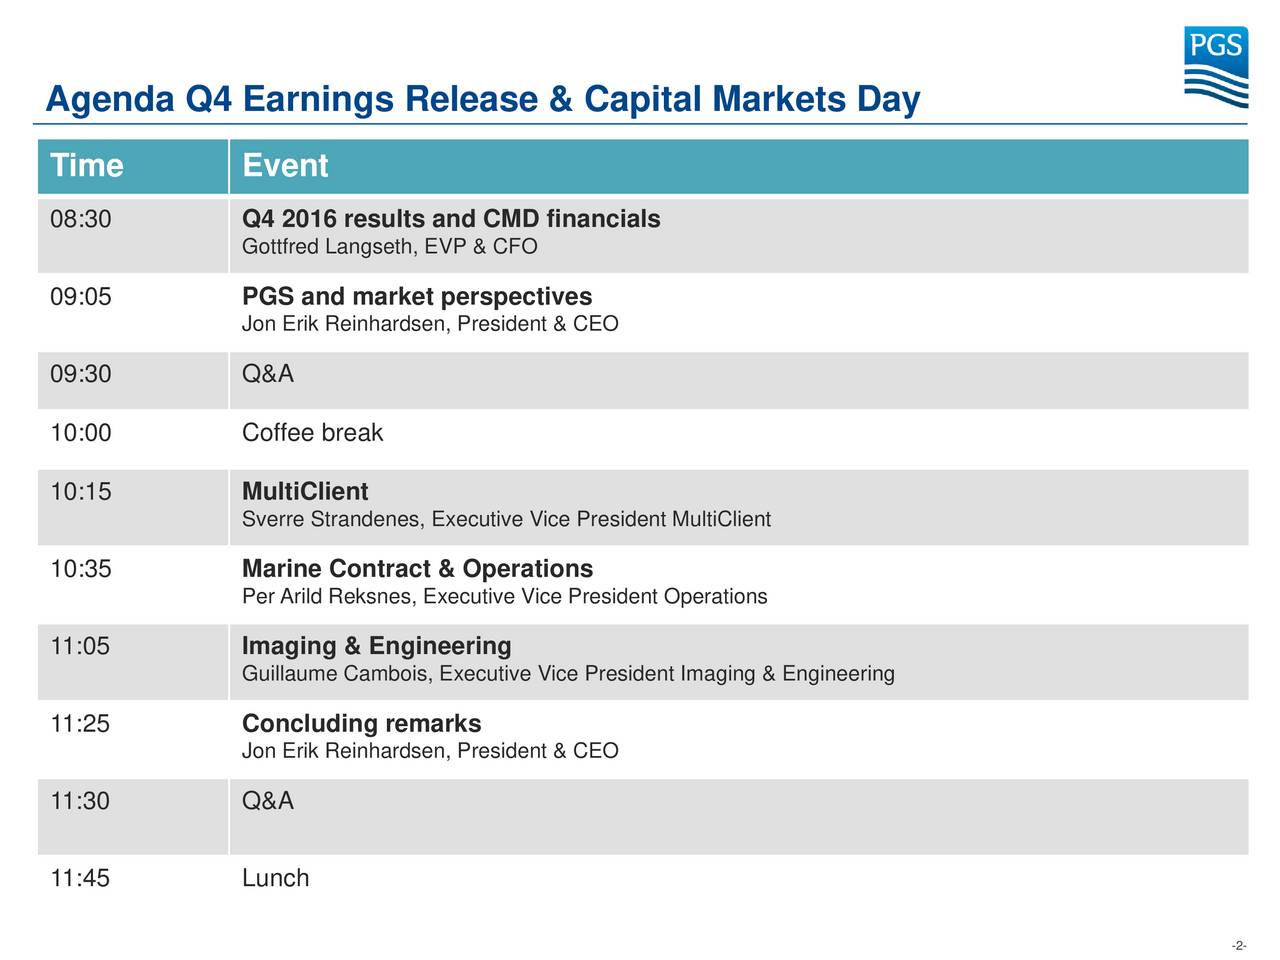 Time Event 08:30 Q4 2016 results and CMD financials Gottfred Langseth, EVP & CFO 09:05 PGS and market perspectives Jon Erik Reinhardsen, President & CEO 09:30 Q&A 10:00 Coffee break 10:15 MultiClient Sverre Strandenes, Executive Vice President MultiClient 10:35 Marine Contract & Operations Per Arild Reksnes, Executive Vice President Operations 11:05 Imaging & Engineering Guillaume Cambois, Executive Vice President Imaging & Engineering 11:25 Concluding remarks Jon Erik Reinhardsen, President & CEO 11:30 Q&A 11:45 Lunch